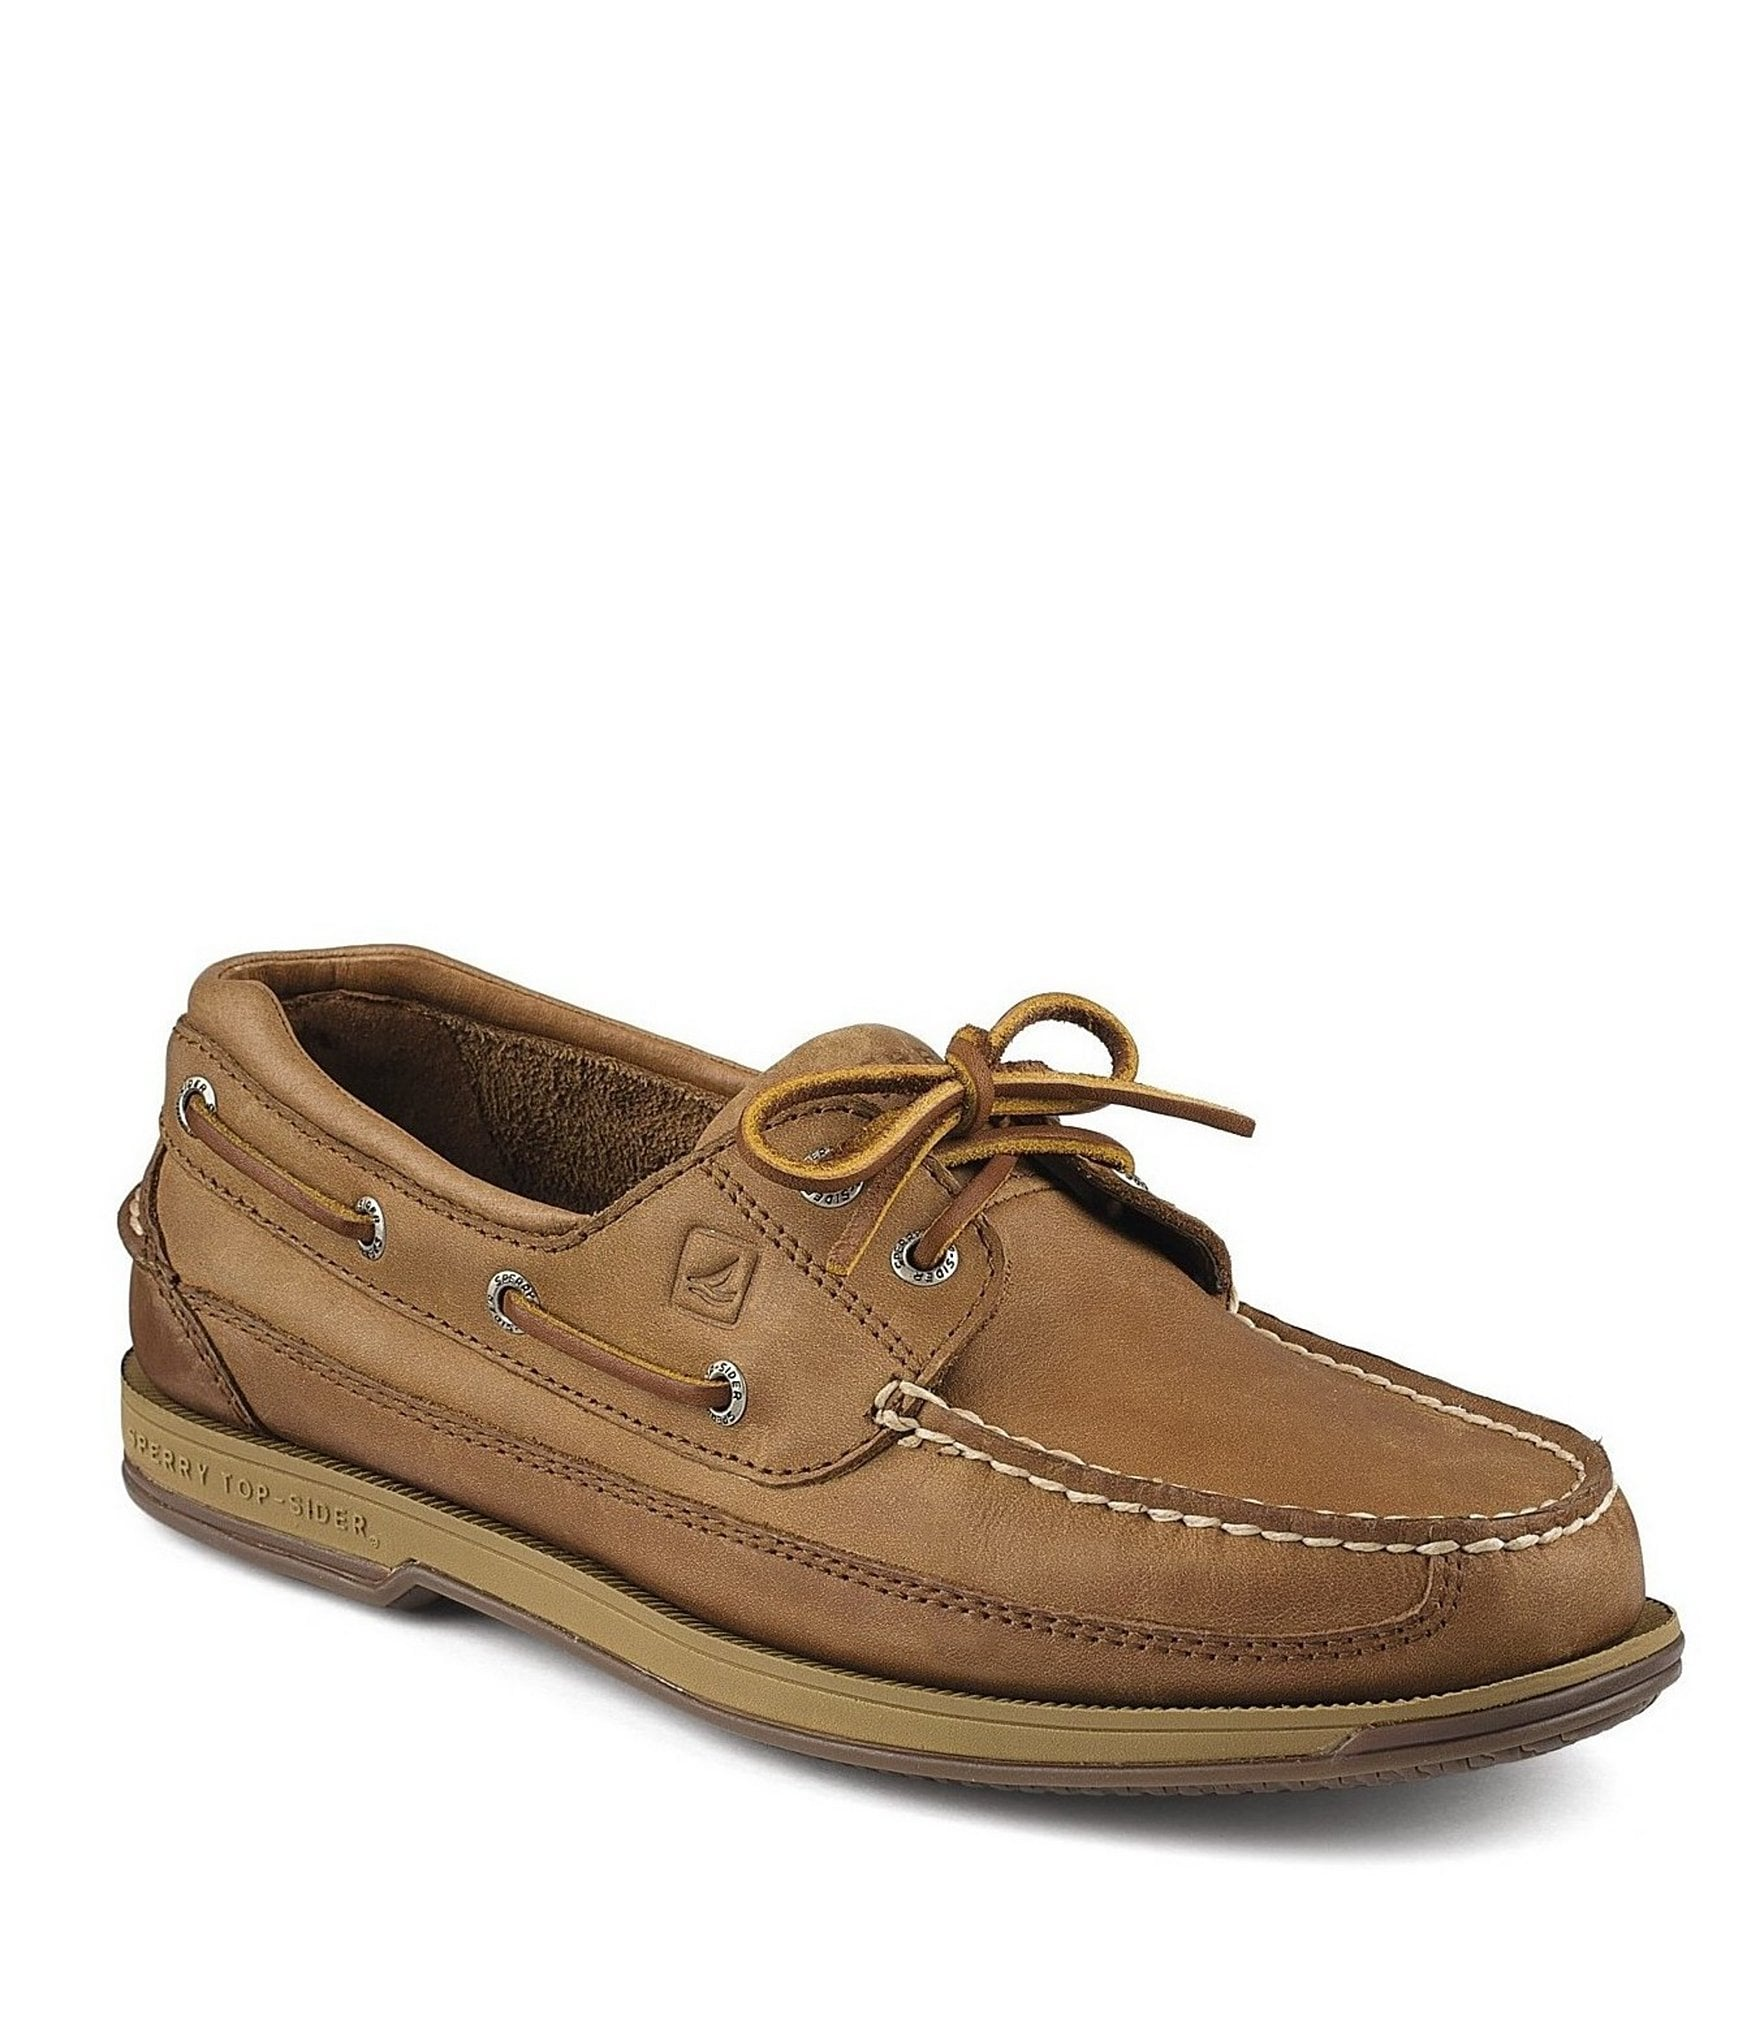 Sperry Shoes With Dress